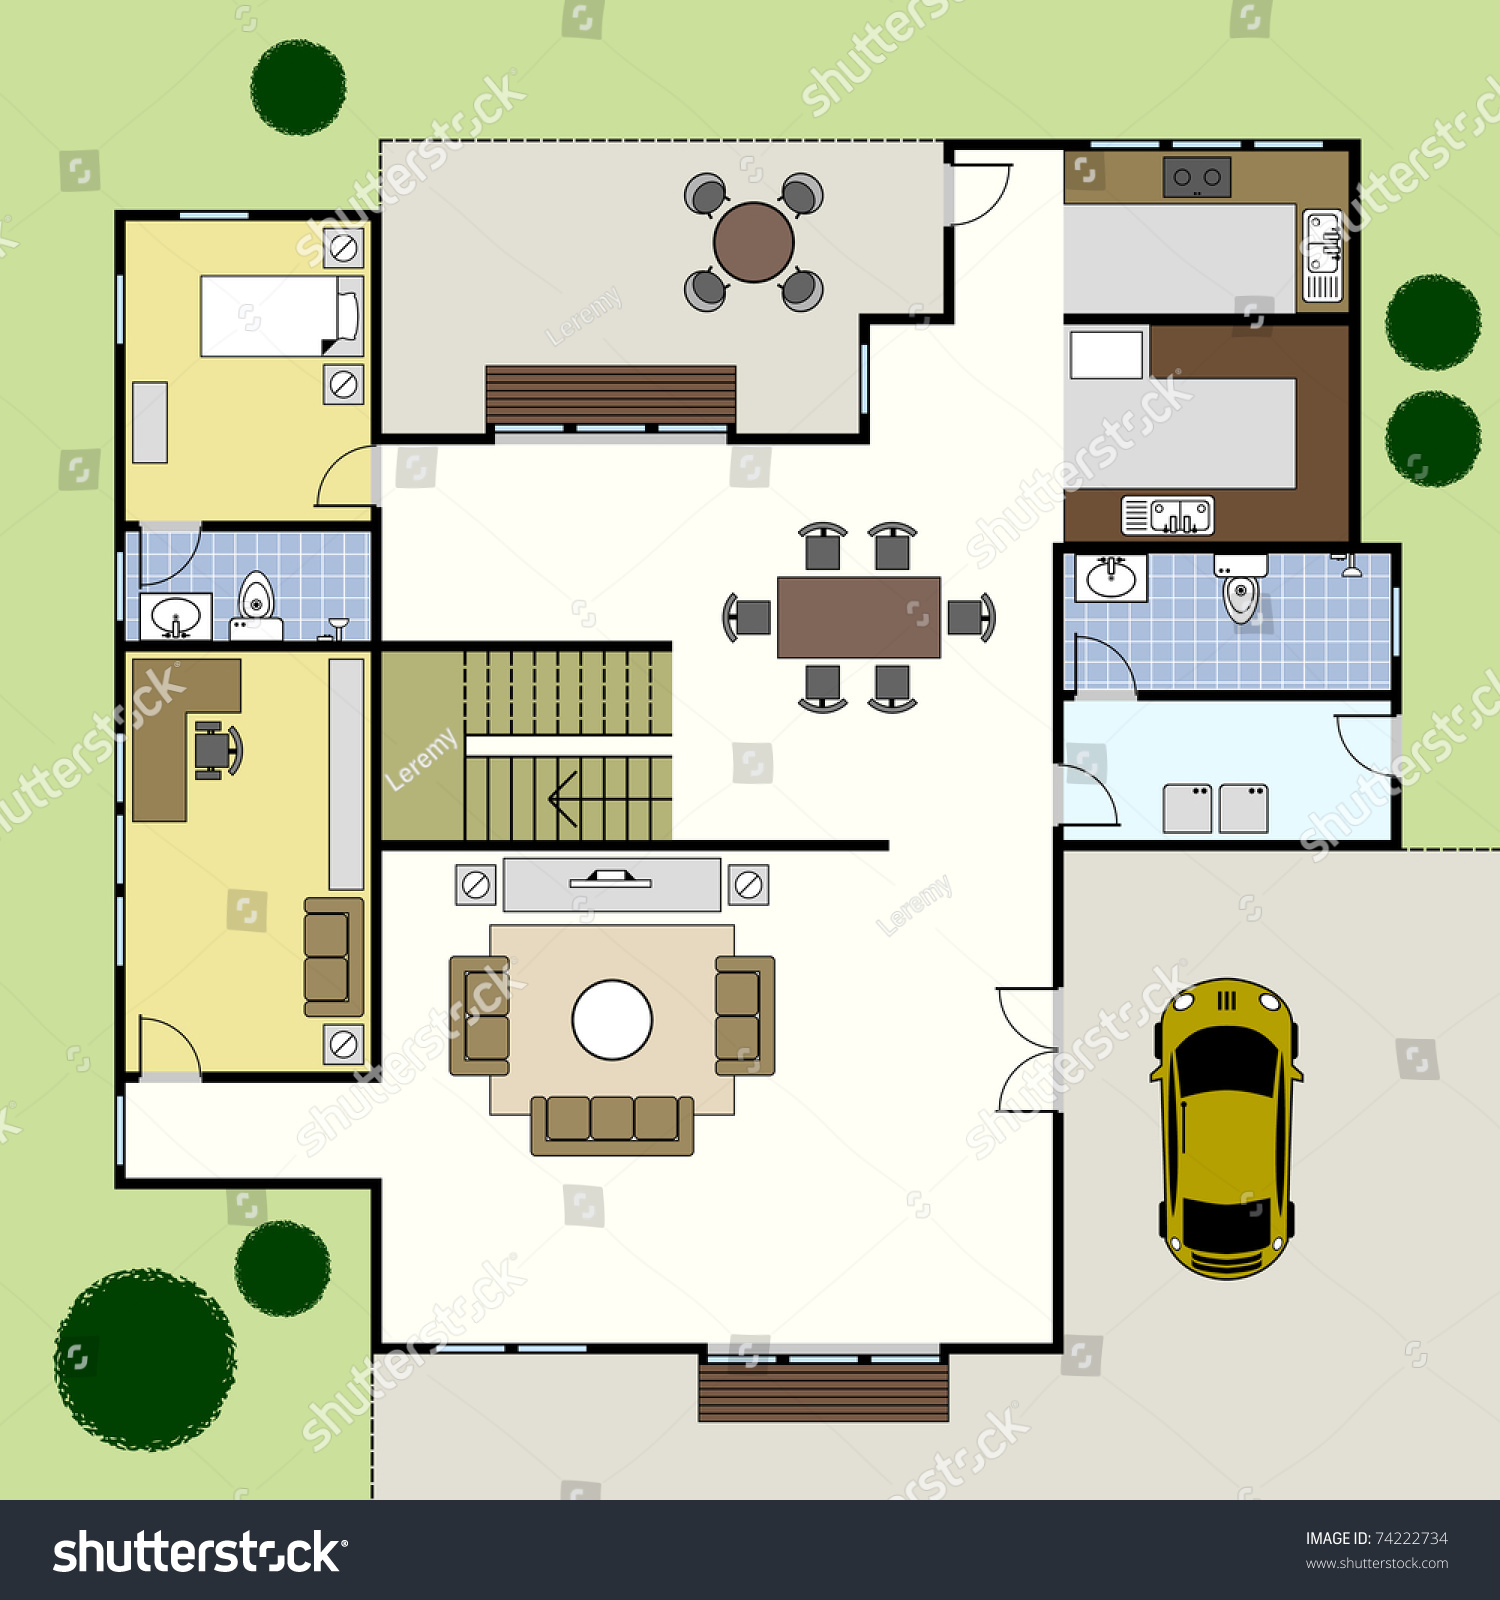 Ground floor plan floorplan house home stock vector 74222734 shutterstock Home layout planner